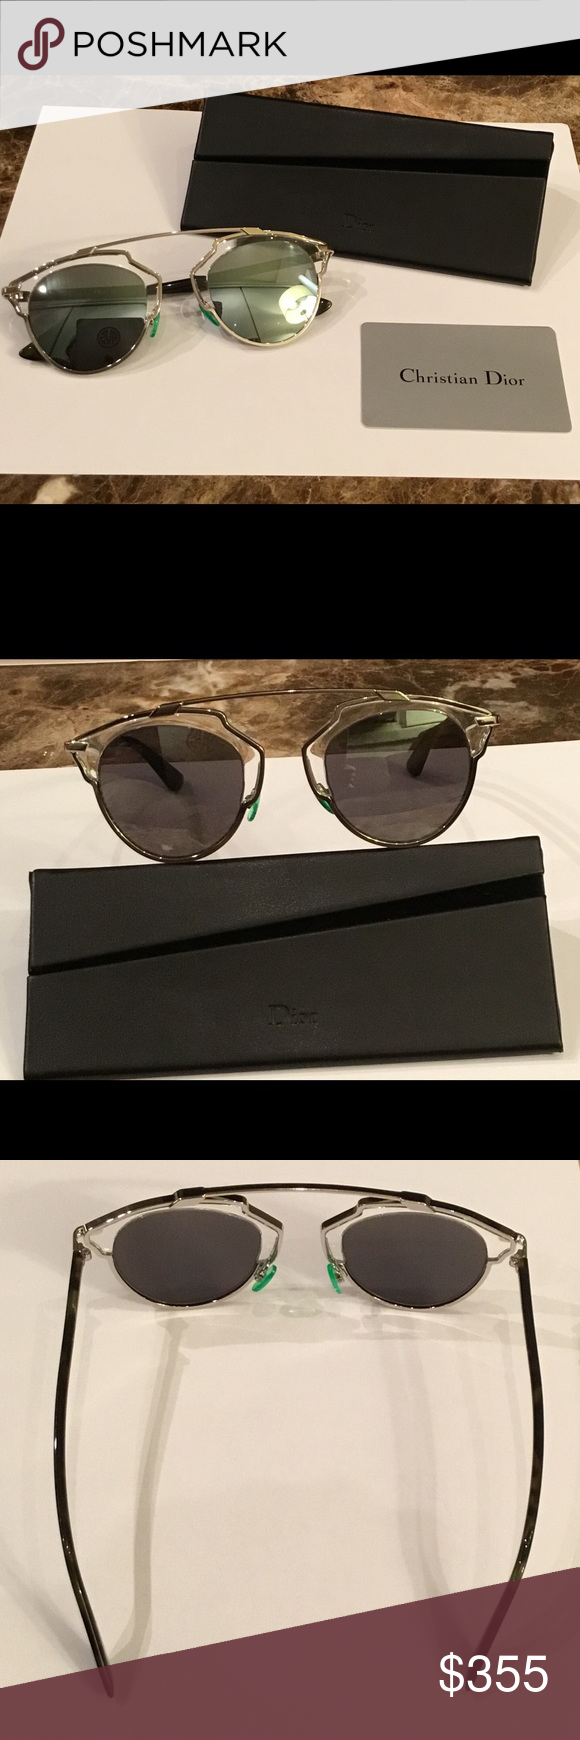 d09d2bf70637 Selling this Dior So Real Sunglasses on Poshmark! My username is   sloanvaught.  shopmycloset  poshmark  fashion  shopping  style  forsale   Dior  Accessories